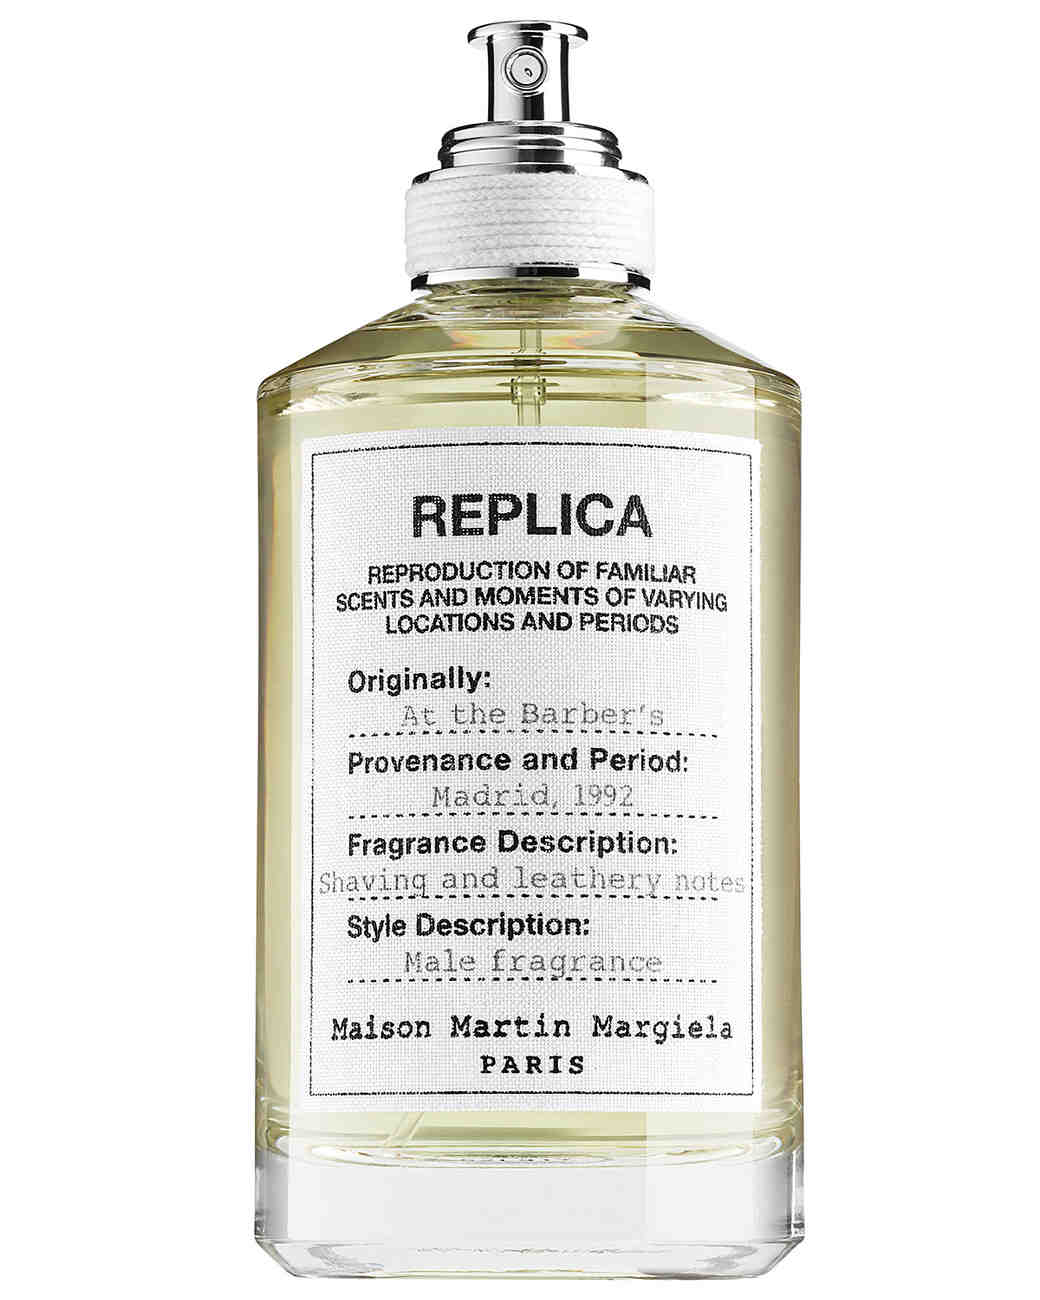 fathers-gift-guide-grooming-replica-sephora-0515.jpg